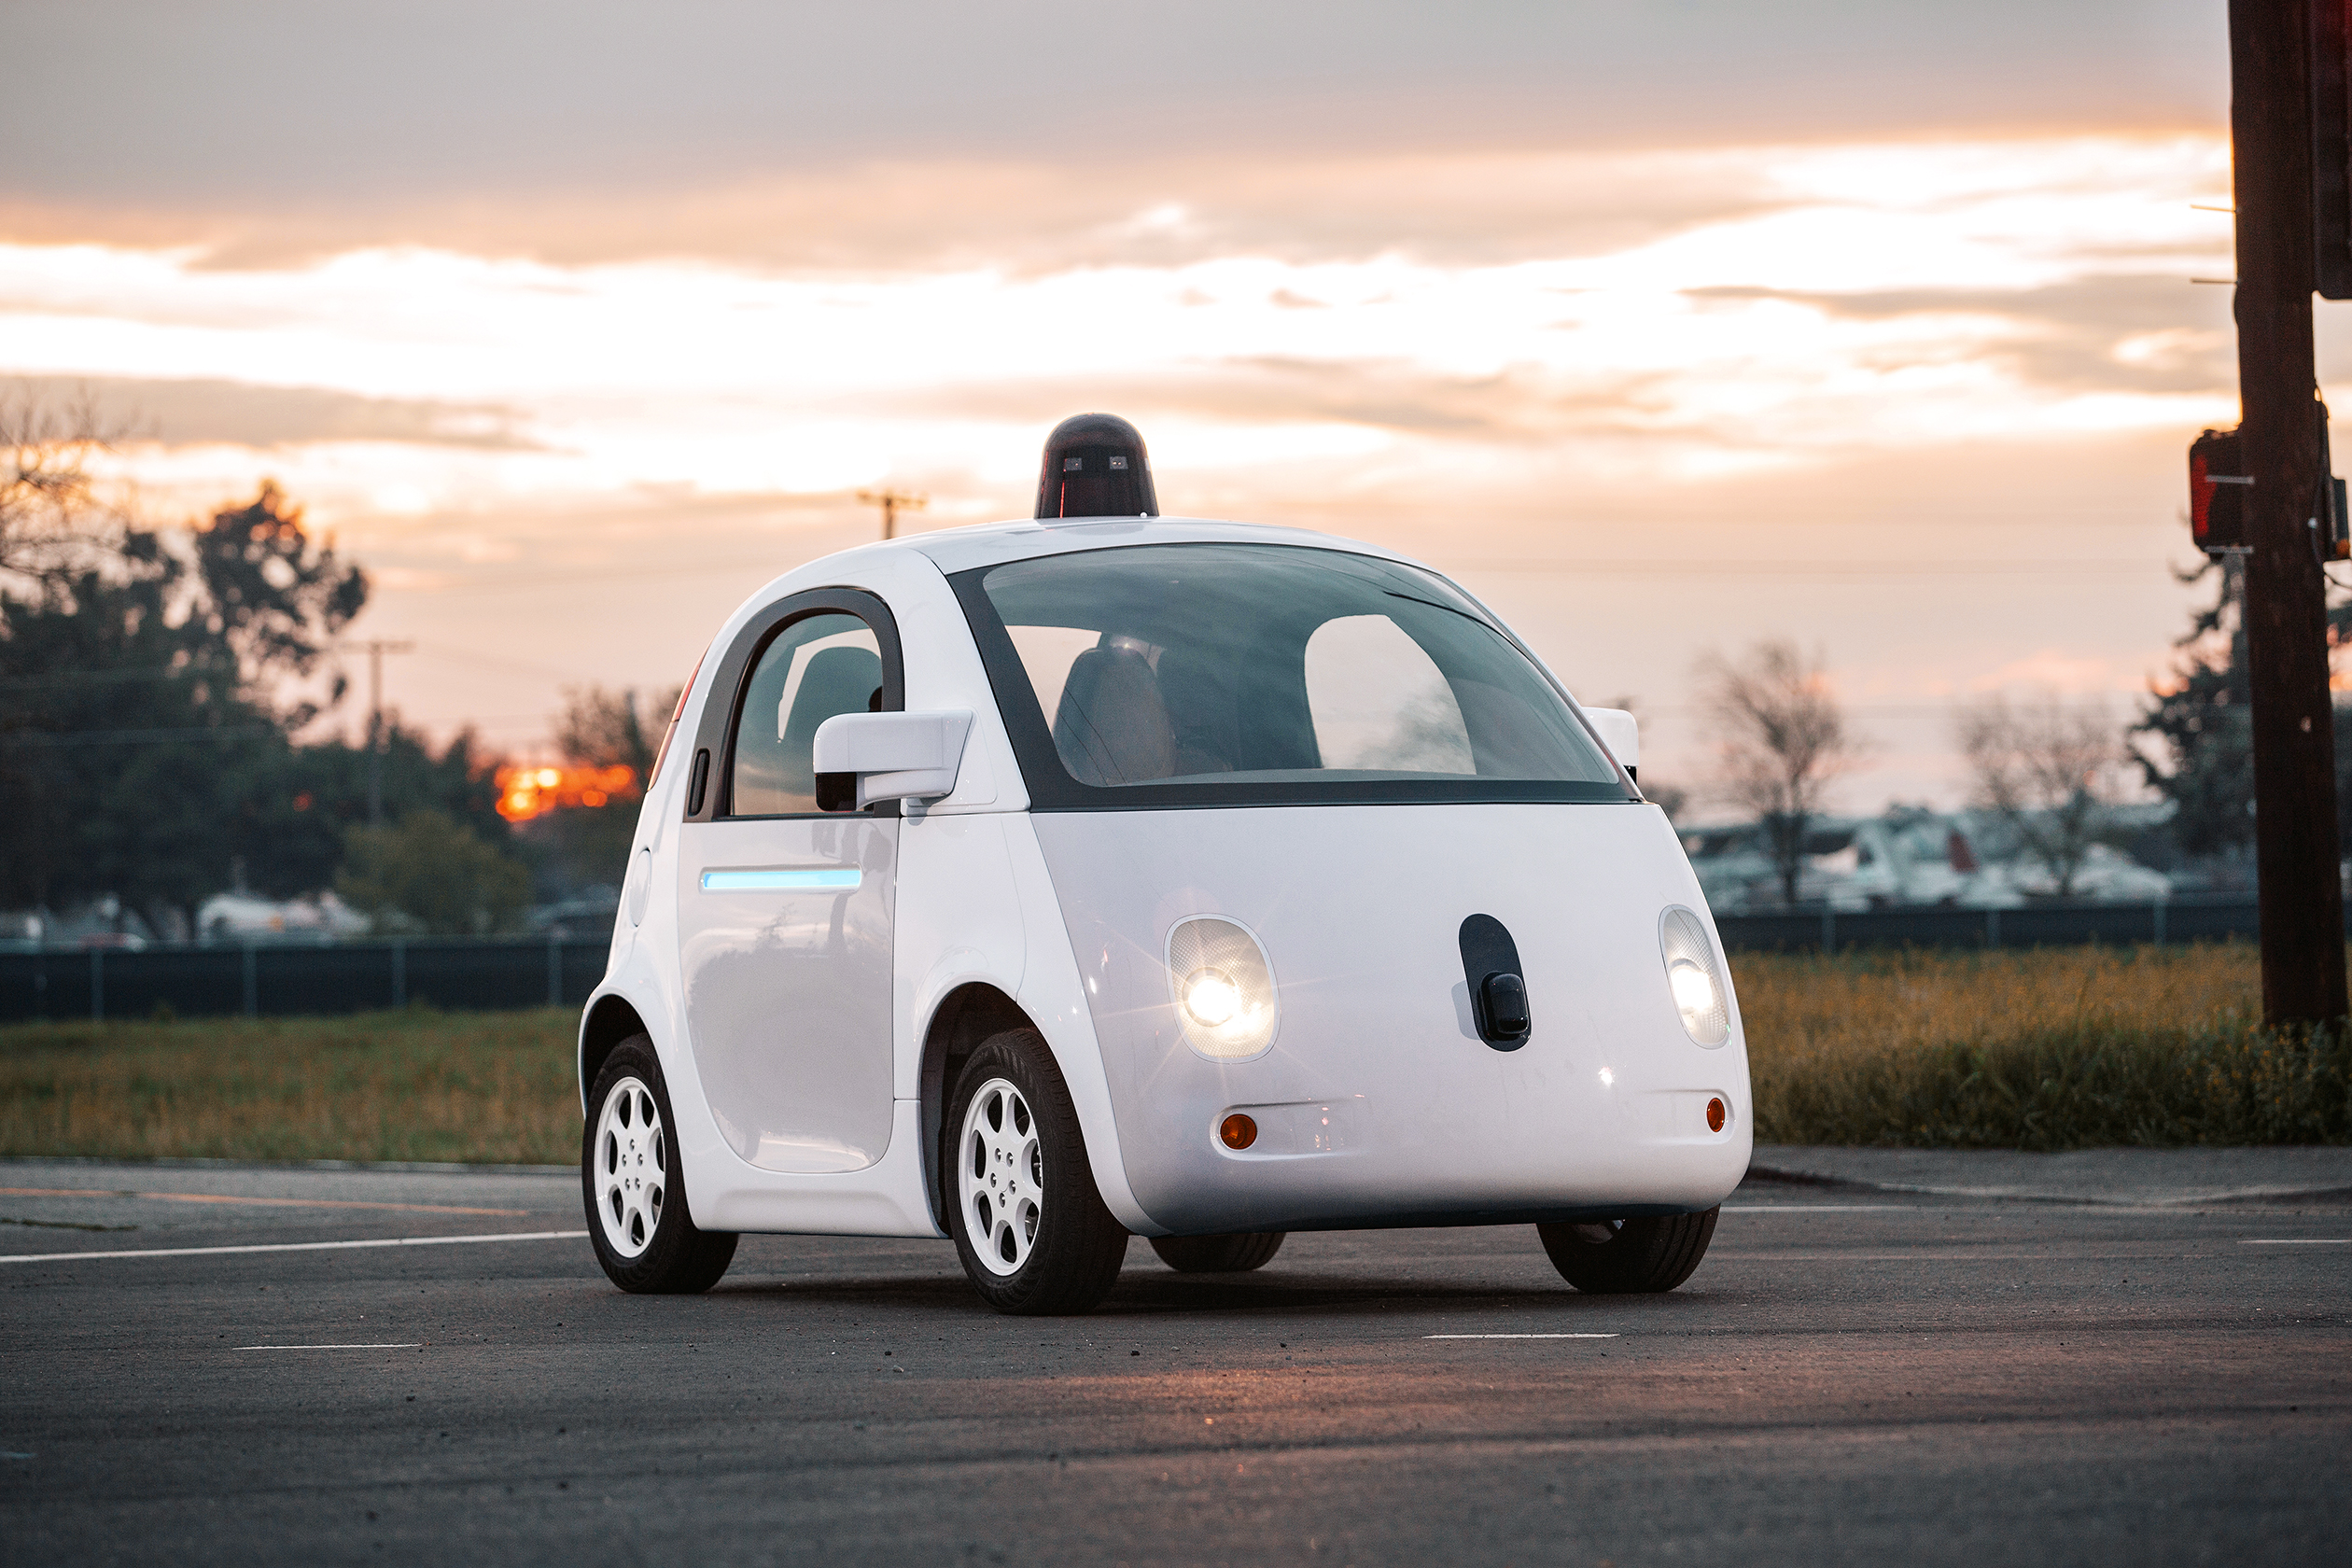 Google's first self-driving concept.